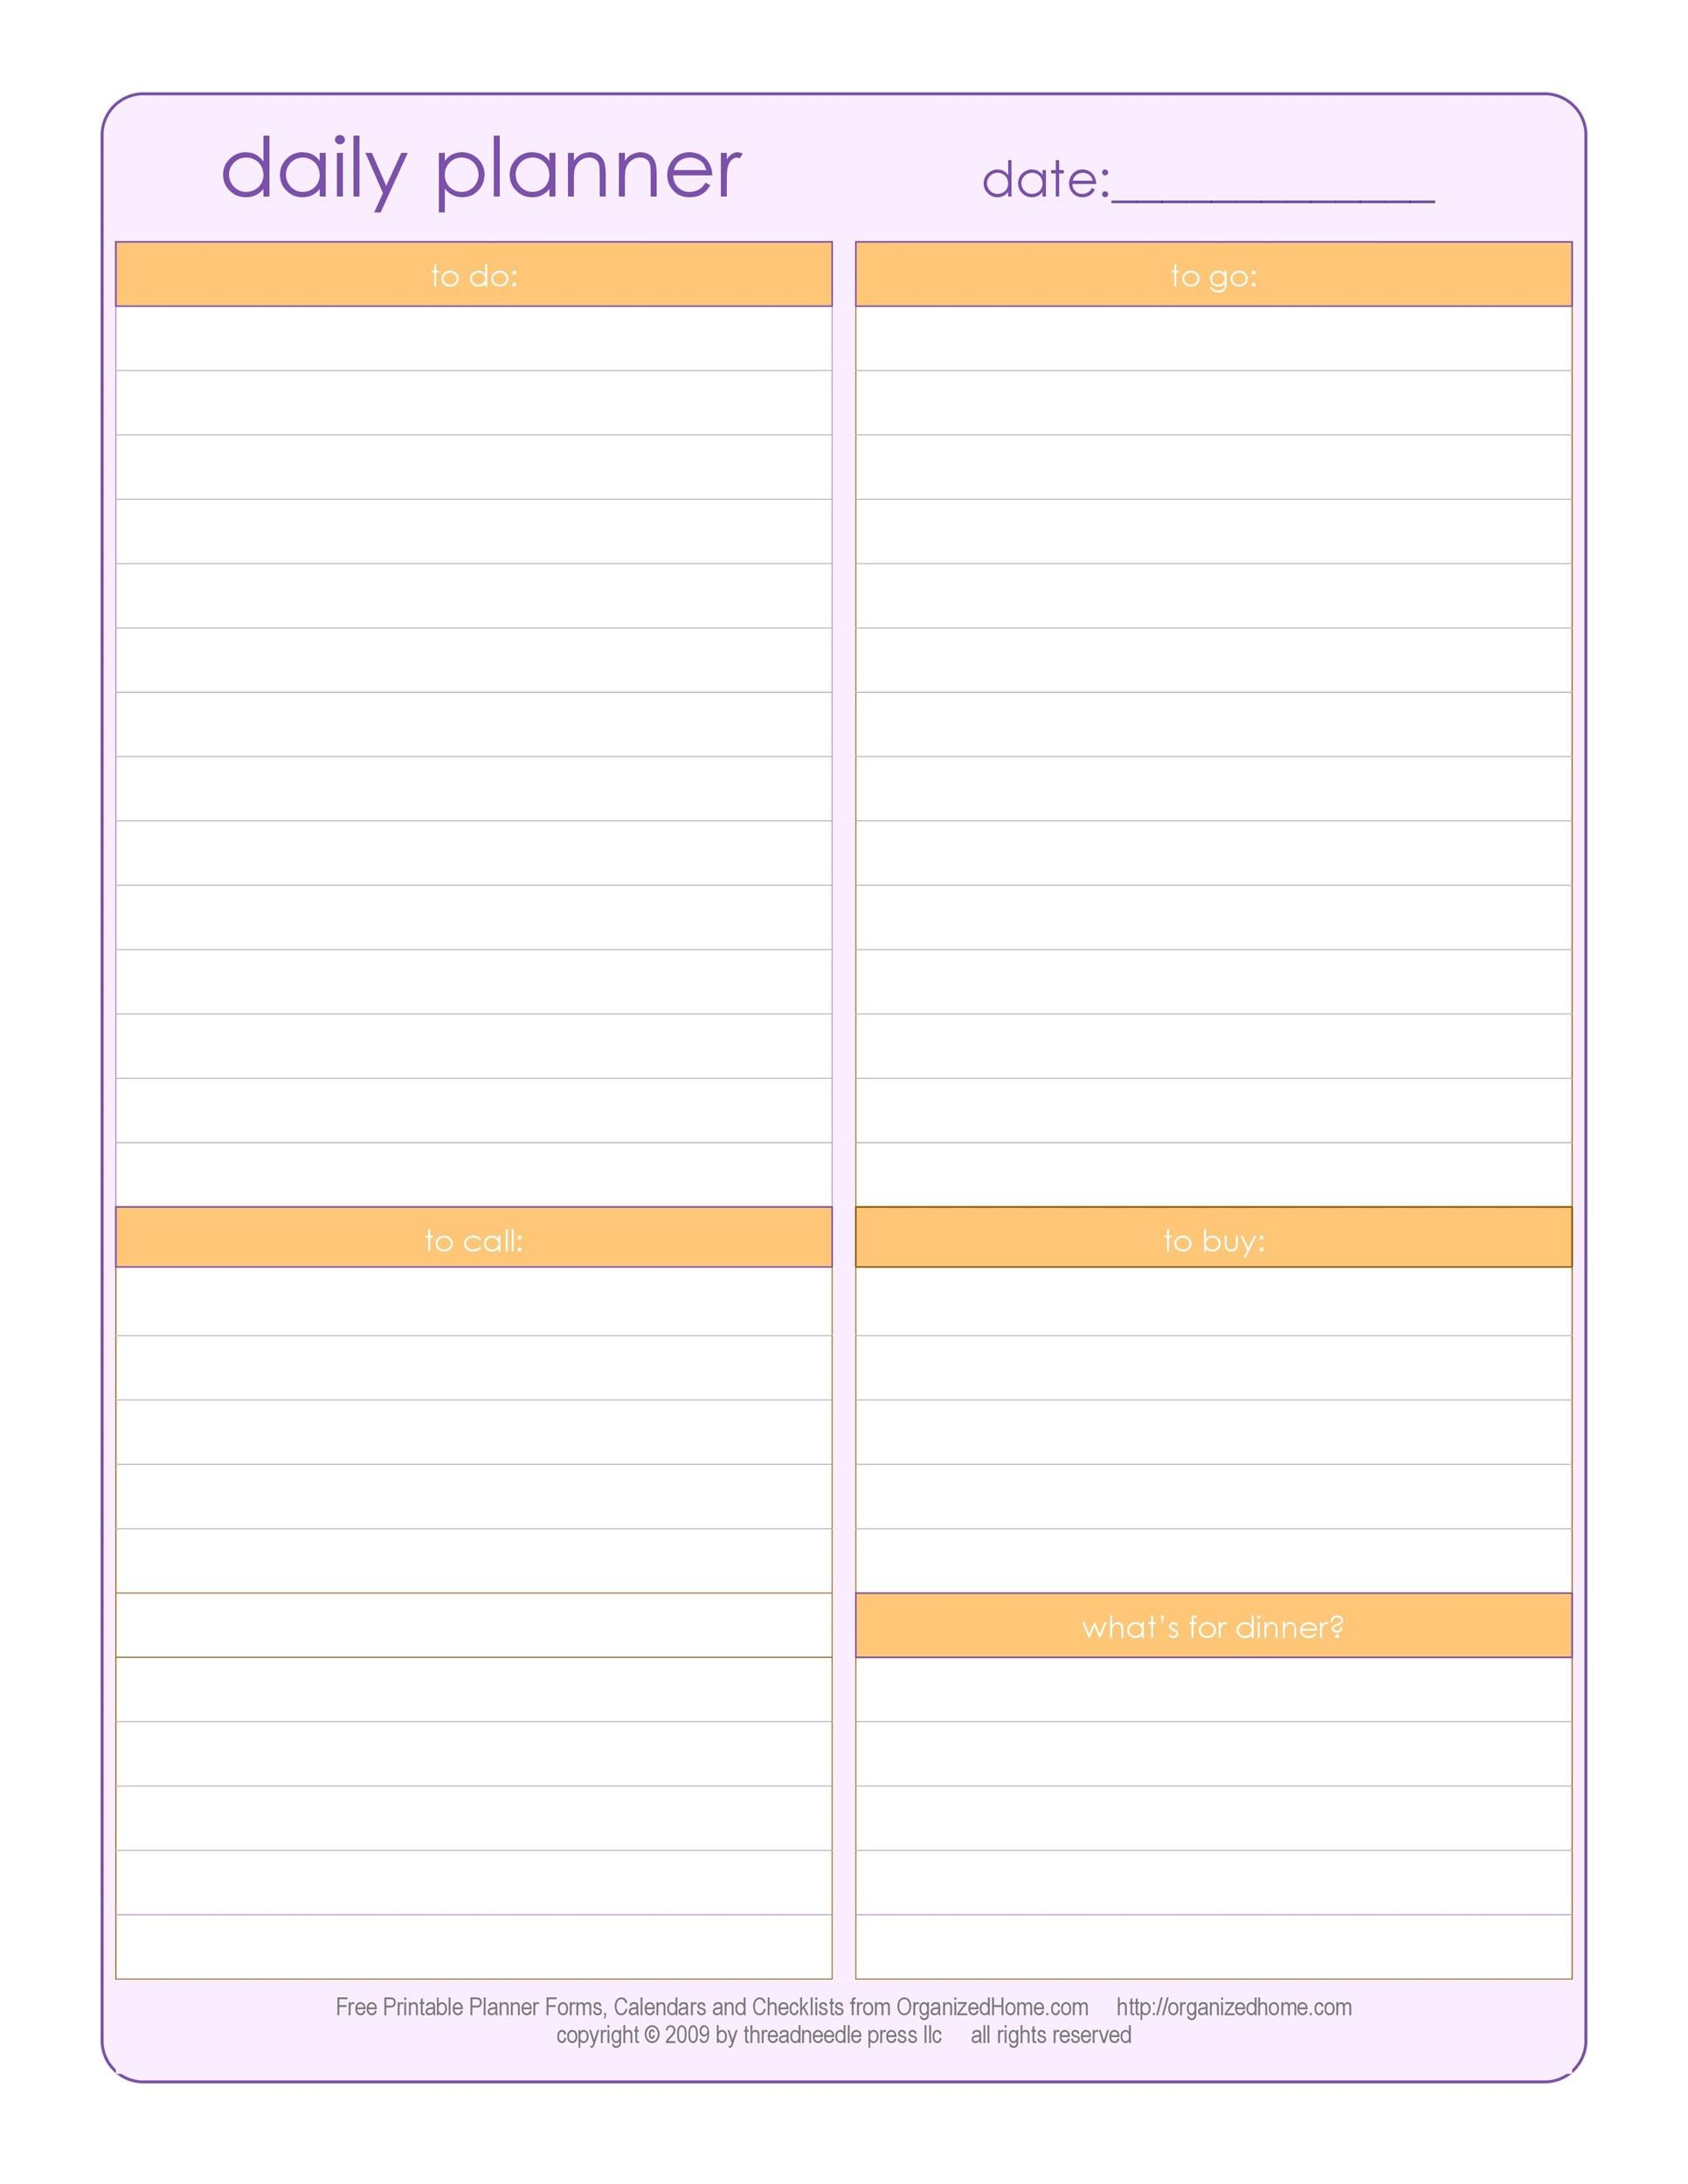 daily planner download